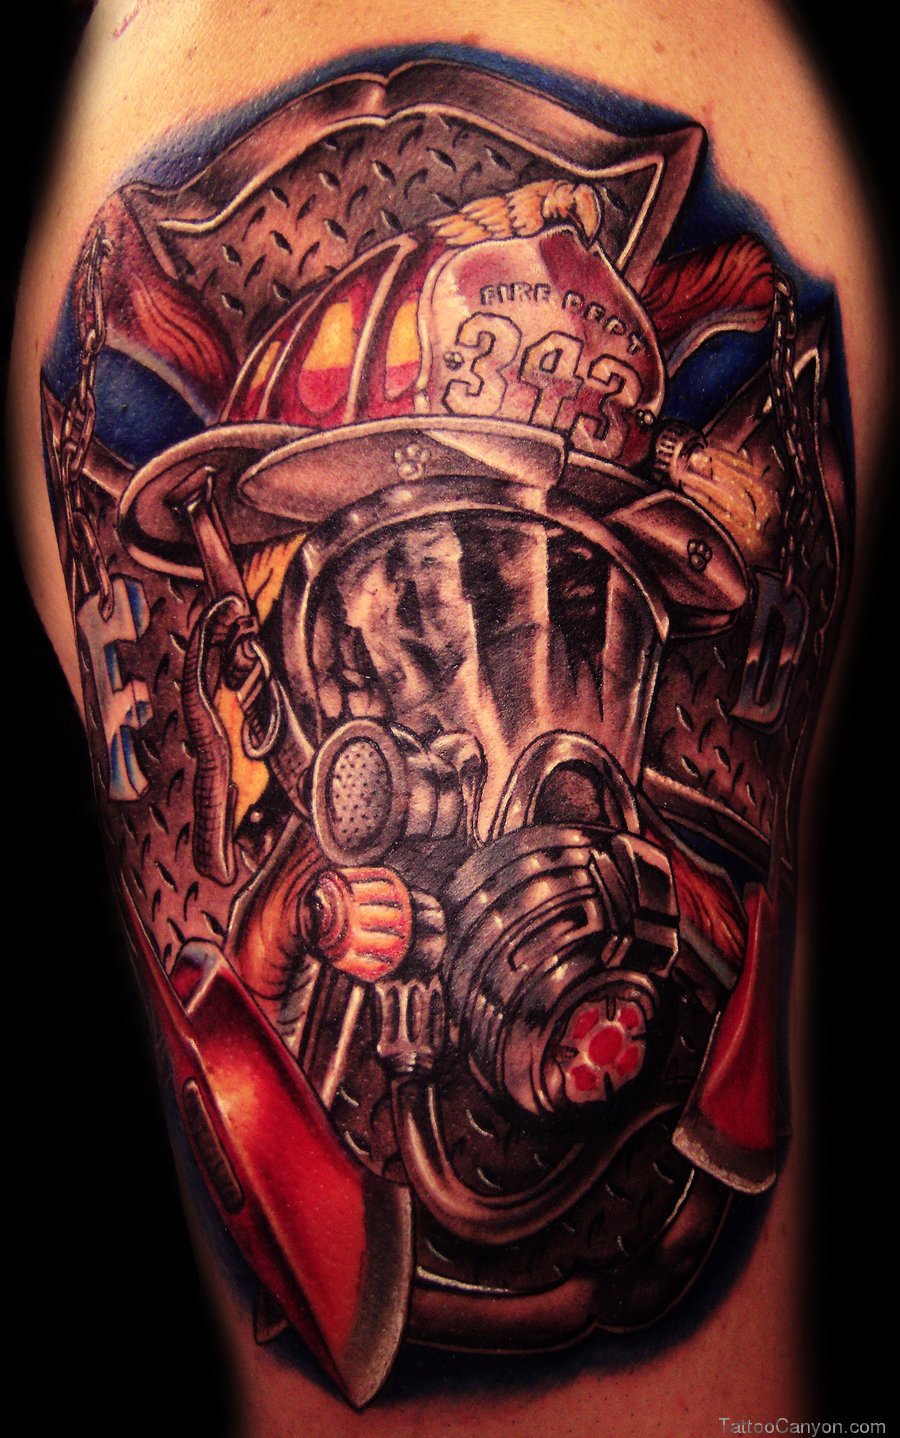 Colorful Firefighter Tattoo Design Image